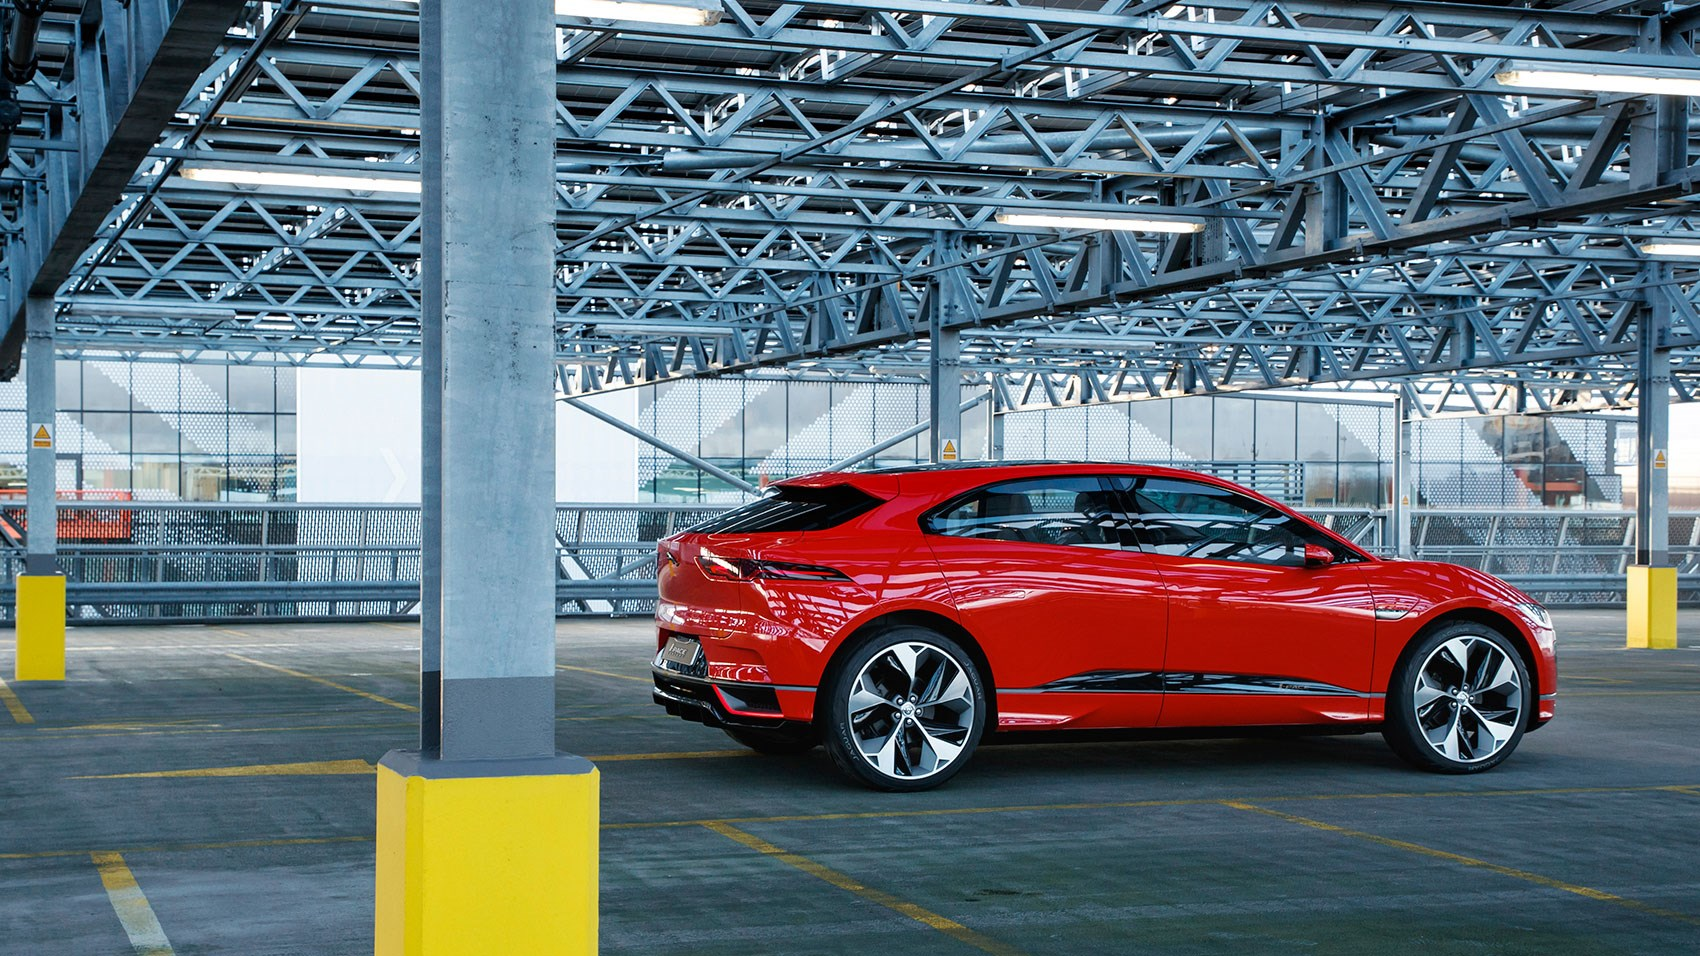 A low-slung kind of crossover: the Jaguar i-Pace electric SUV